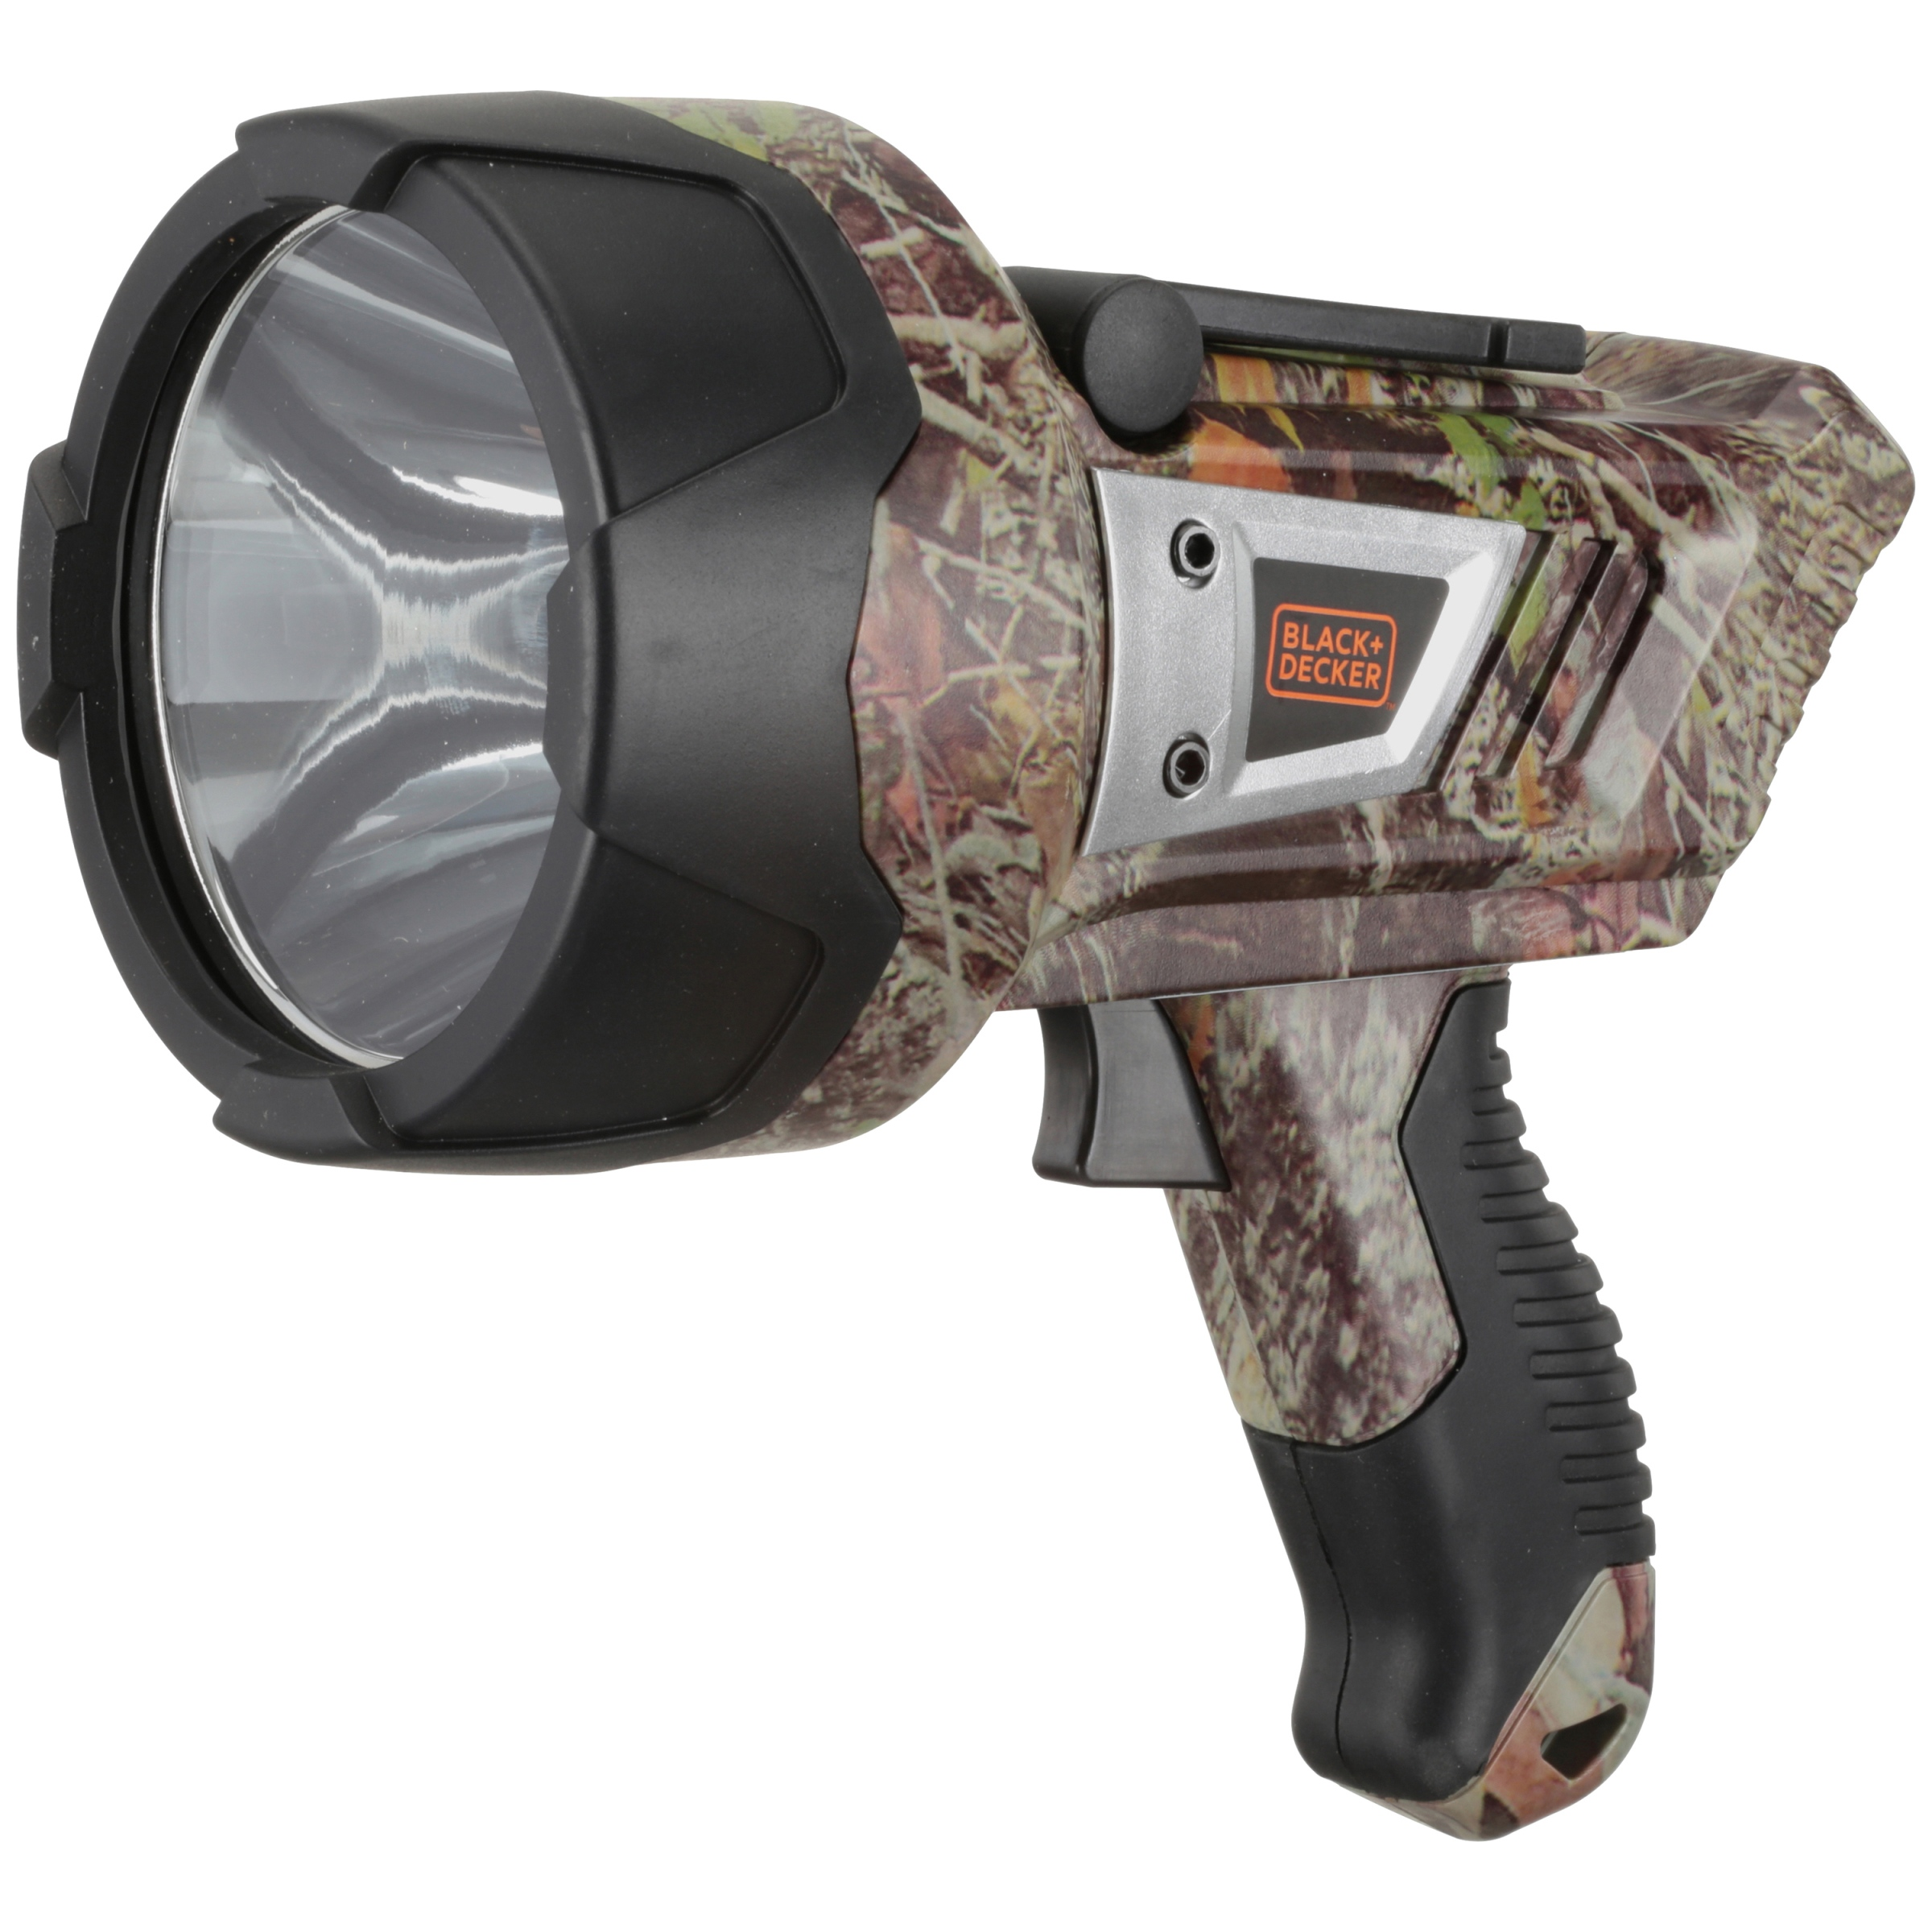 Stanley 5 Watt Led Rechargeable Spotlight: Spotlights At Outdoor Realm